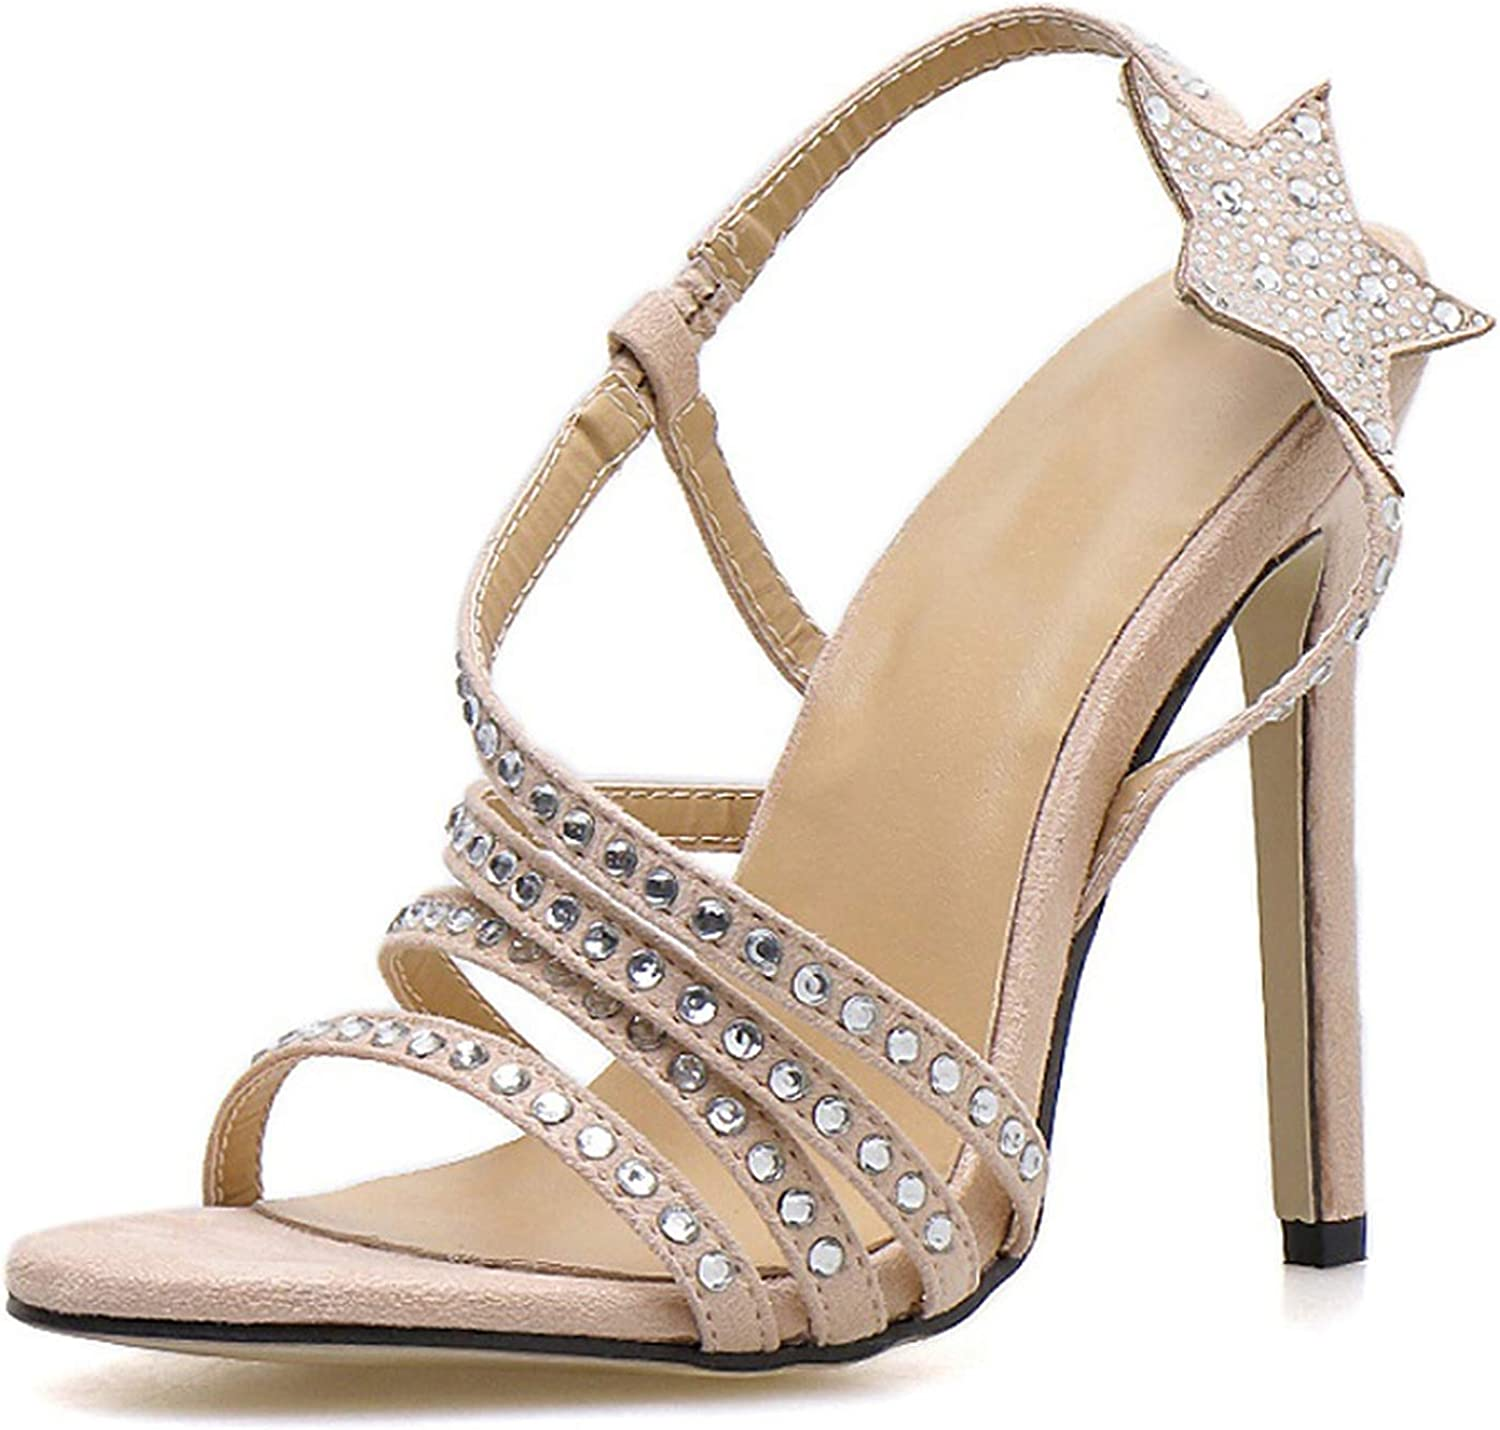 April With You Summer Rhinestone Sandals Sexy Stiletto Open Toe High Heels Hollow Thin Back Strap Crystal Sandals